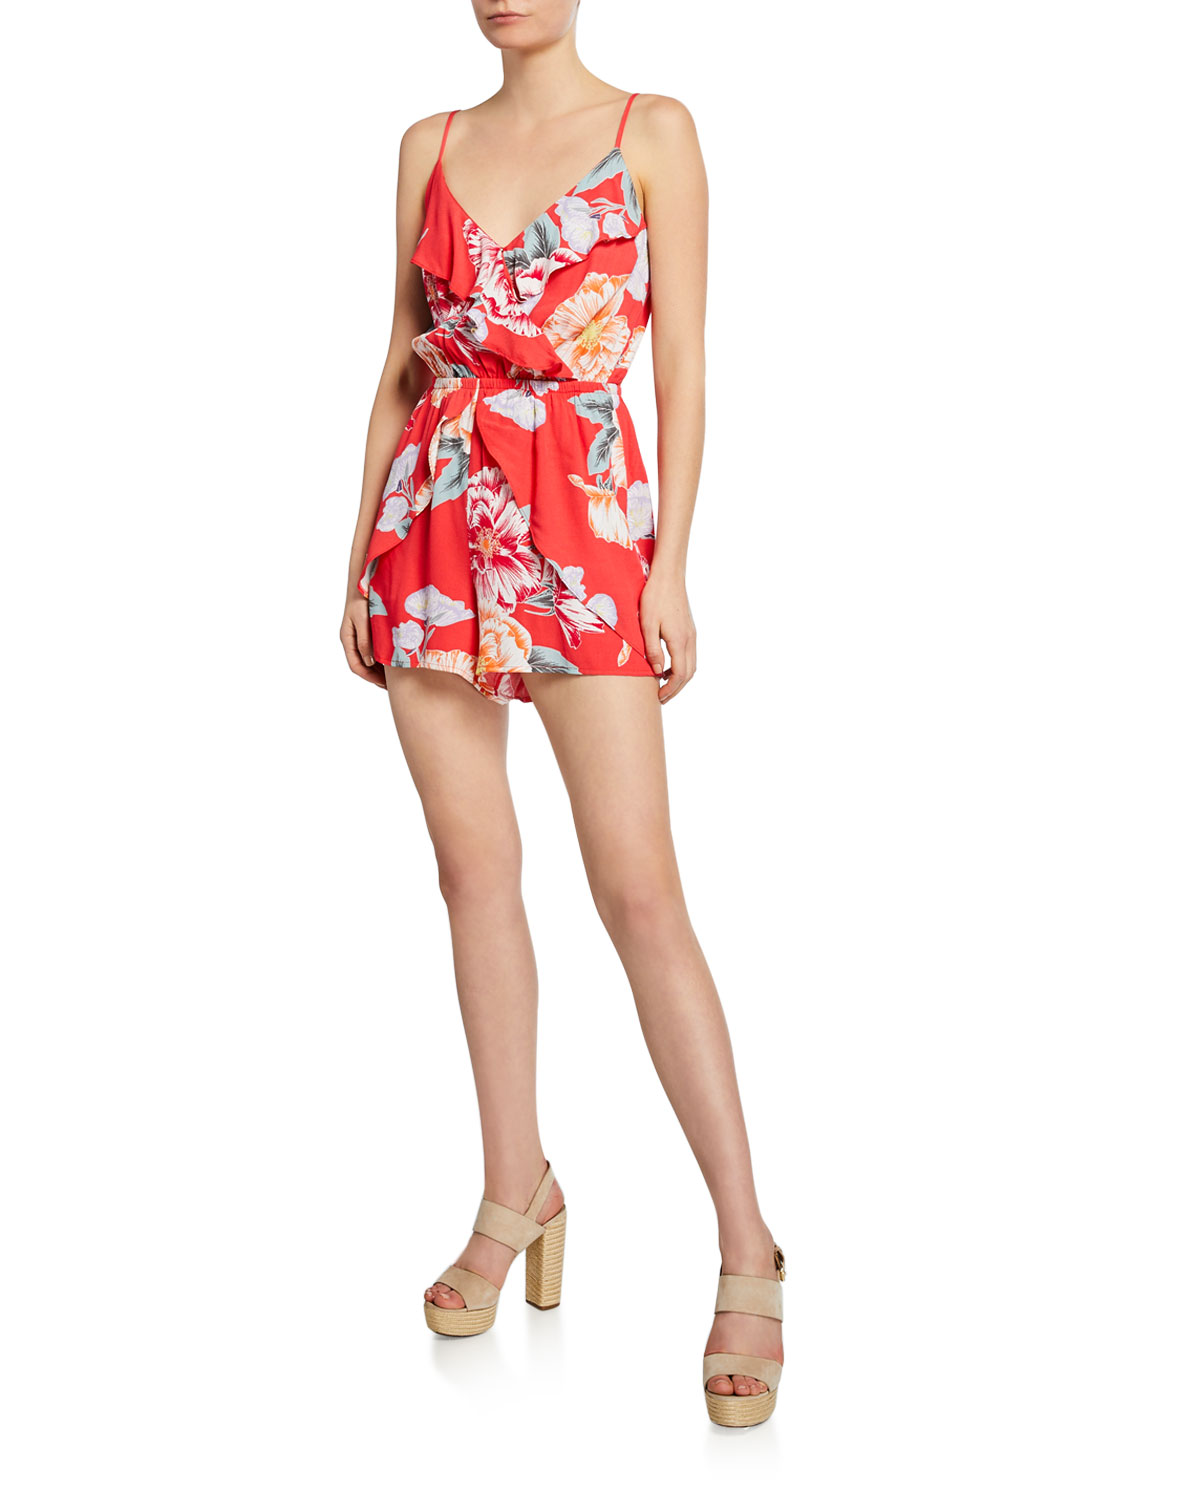 Astria Floral Print Ruffle Romper by Cupcakes And Cashmere